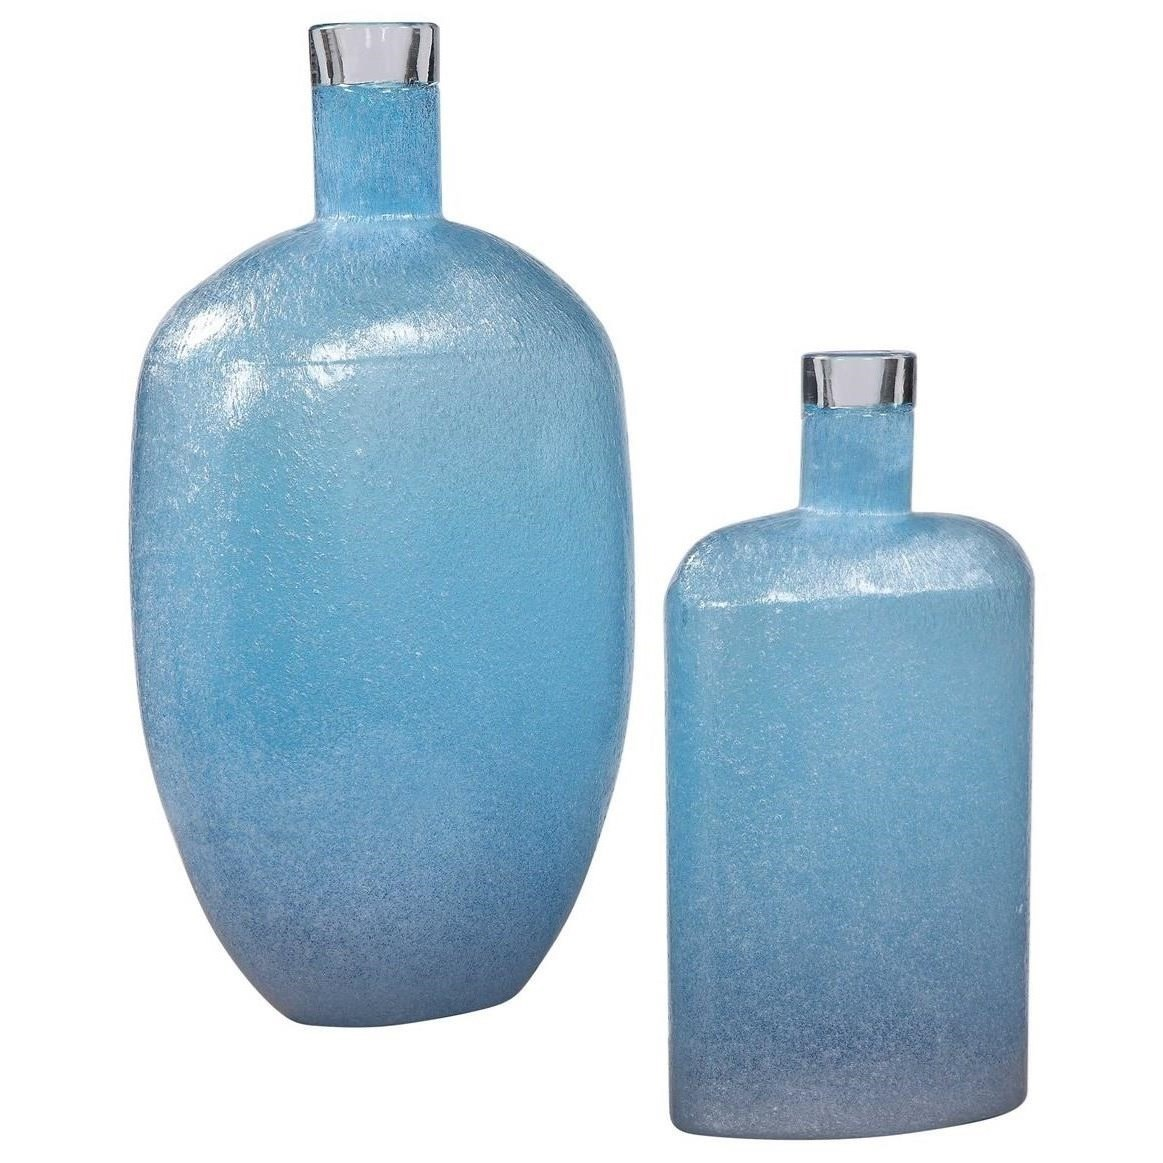 Accessories - Vases and Urns Suvi Blue Glass Vases, Set/2 by Uttermost at Mueller Furniture